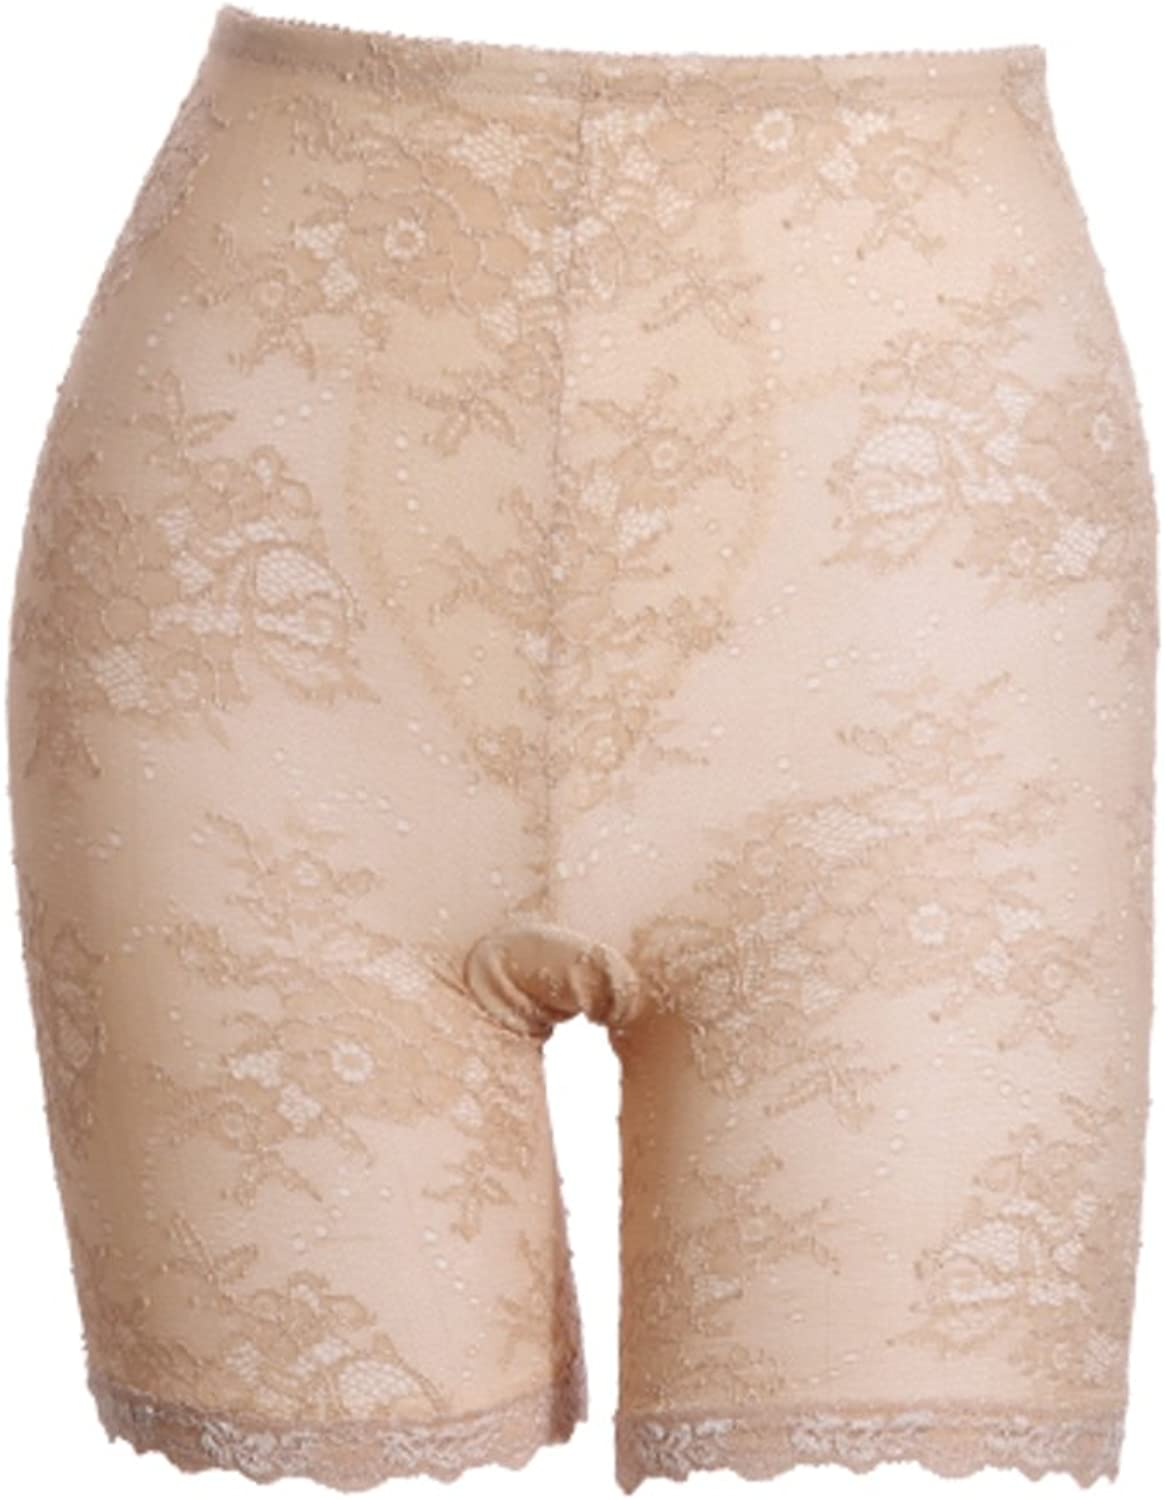 HFDSTRH GHRHA Lace Sexy Slim Compact Body Shaping Pants Boxer Shorts